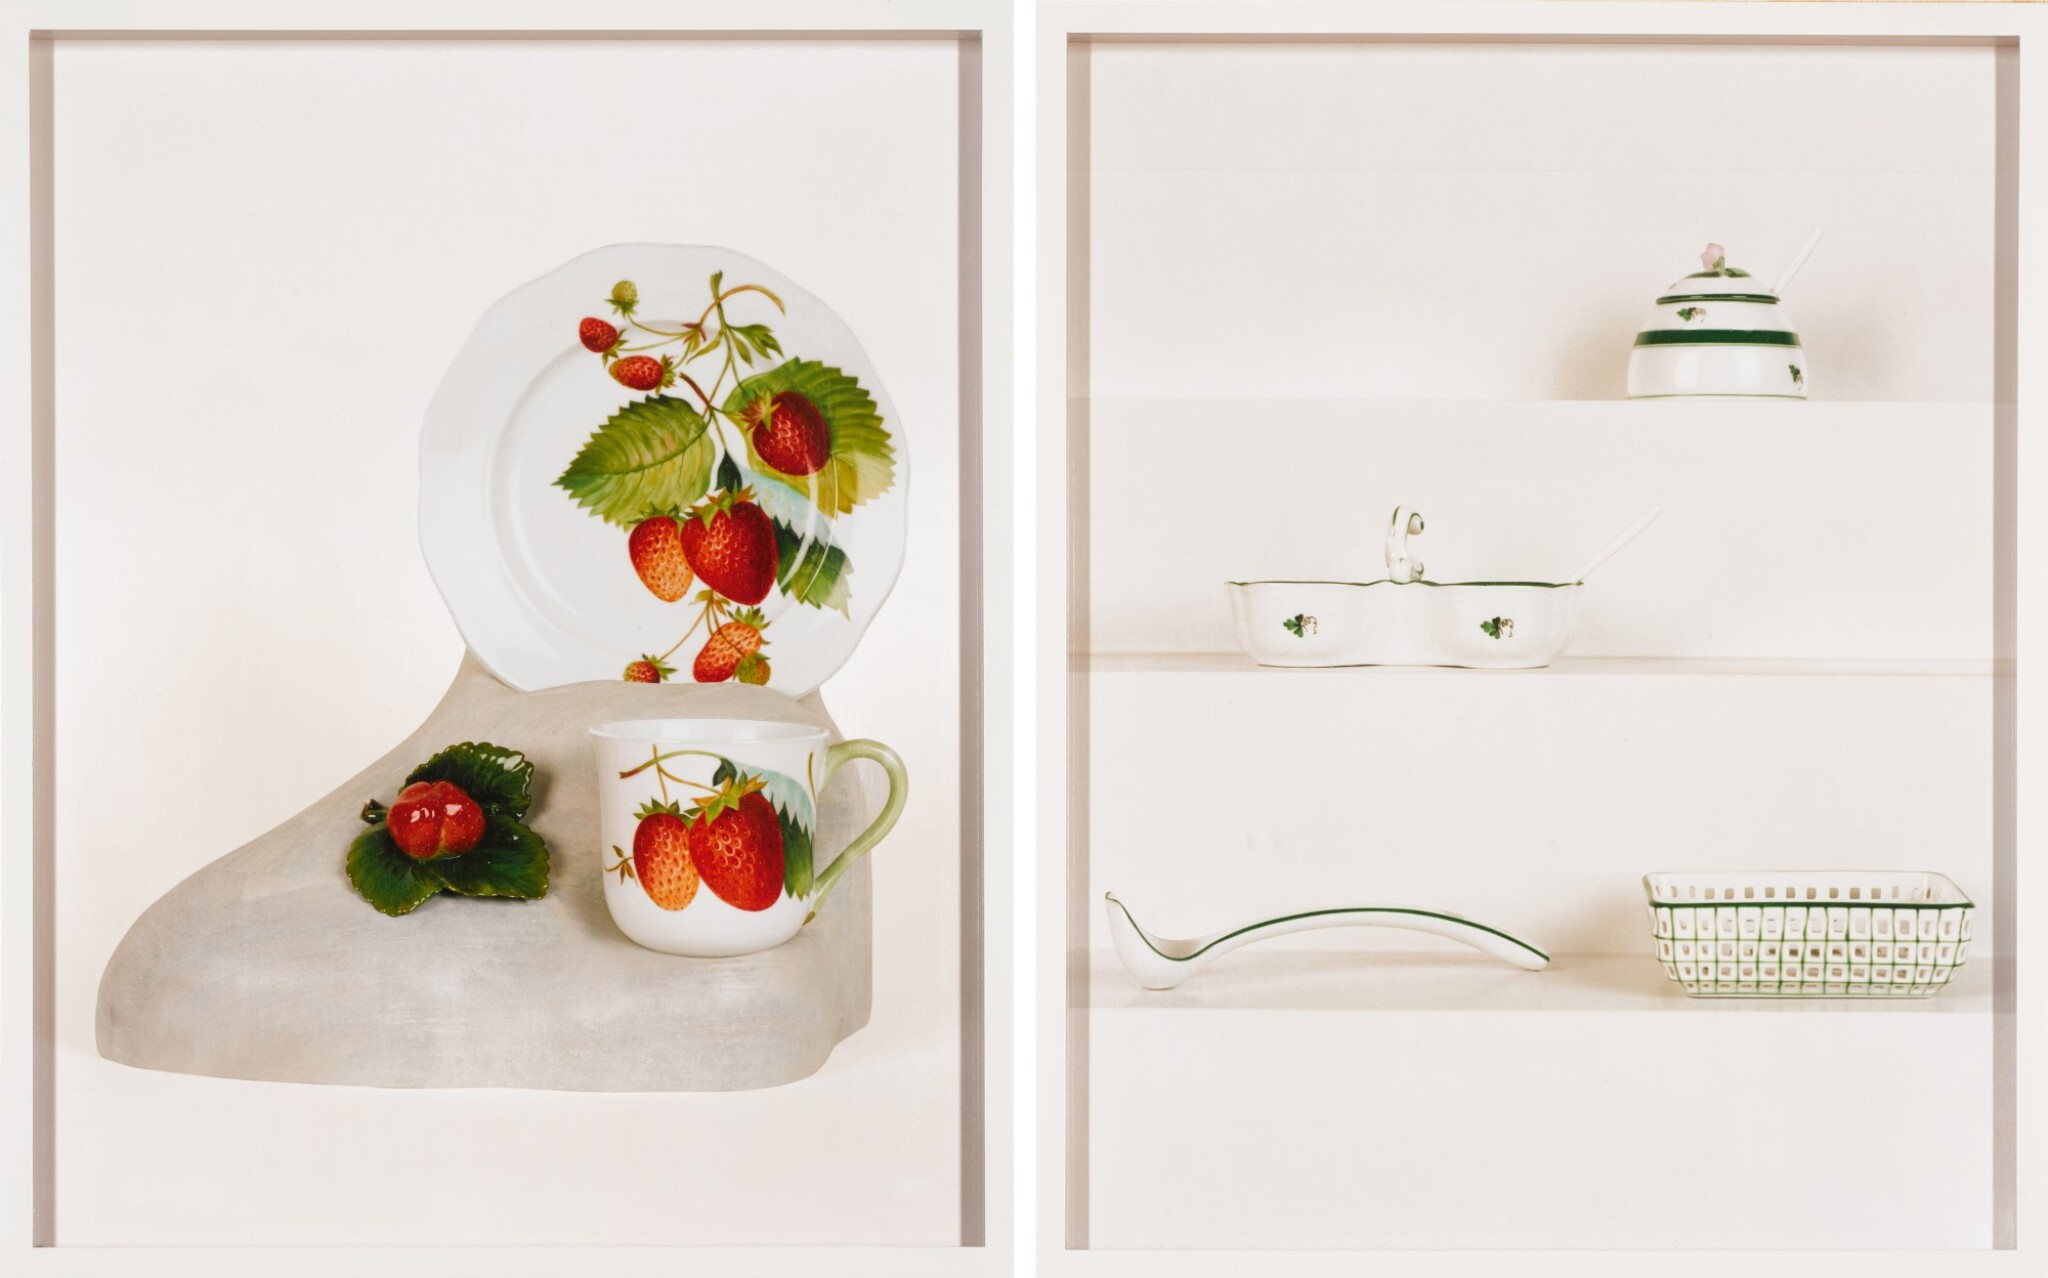 View 1 of Lot 96. Dishes (Strawberry); Dishes (Porcelain, Green) (Two Works).